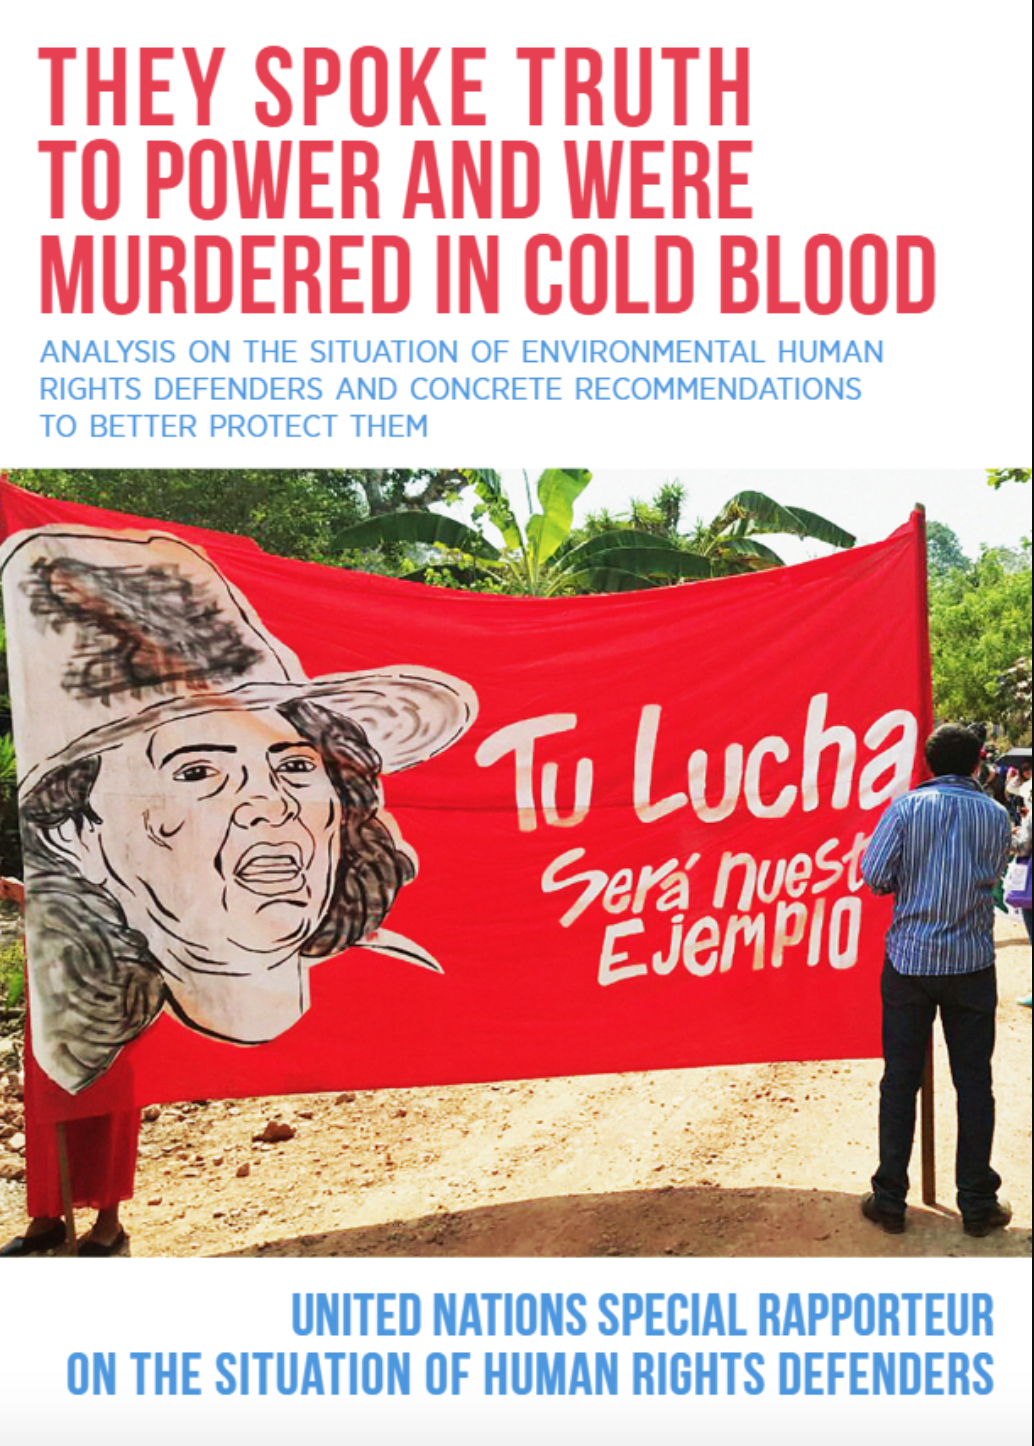 'They spoke truth to power and were murdered in cold blood:' analysis on the situation of environmental human rights defenders and concrete recommendations to better protect them